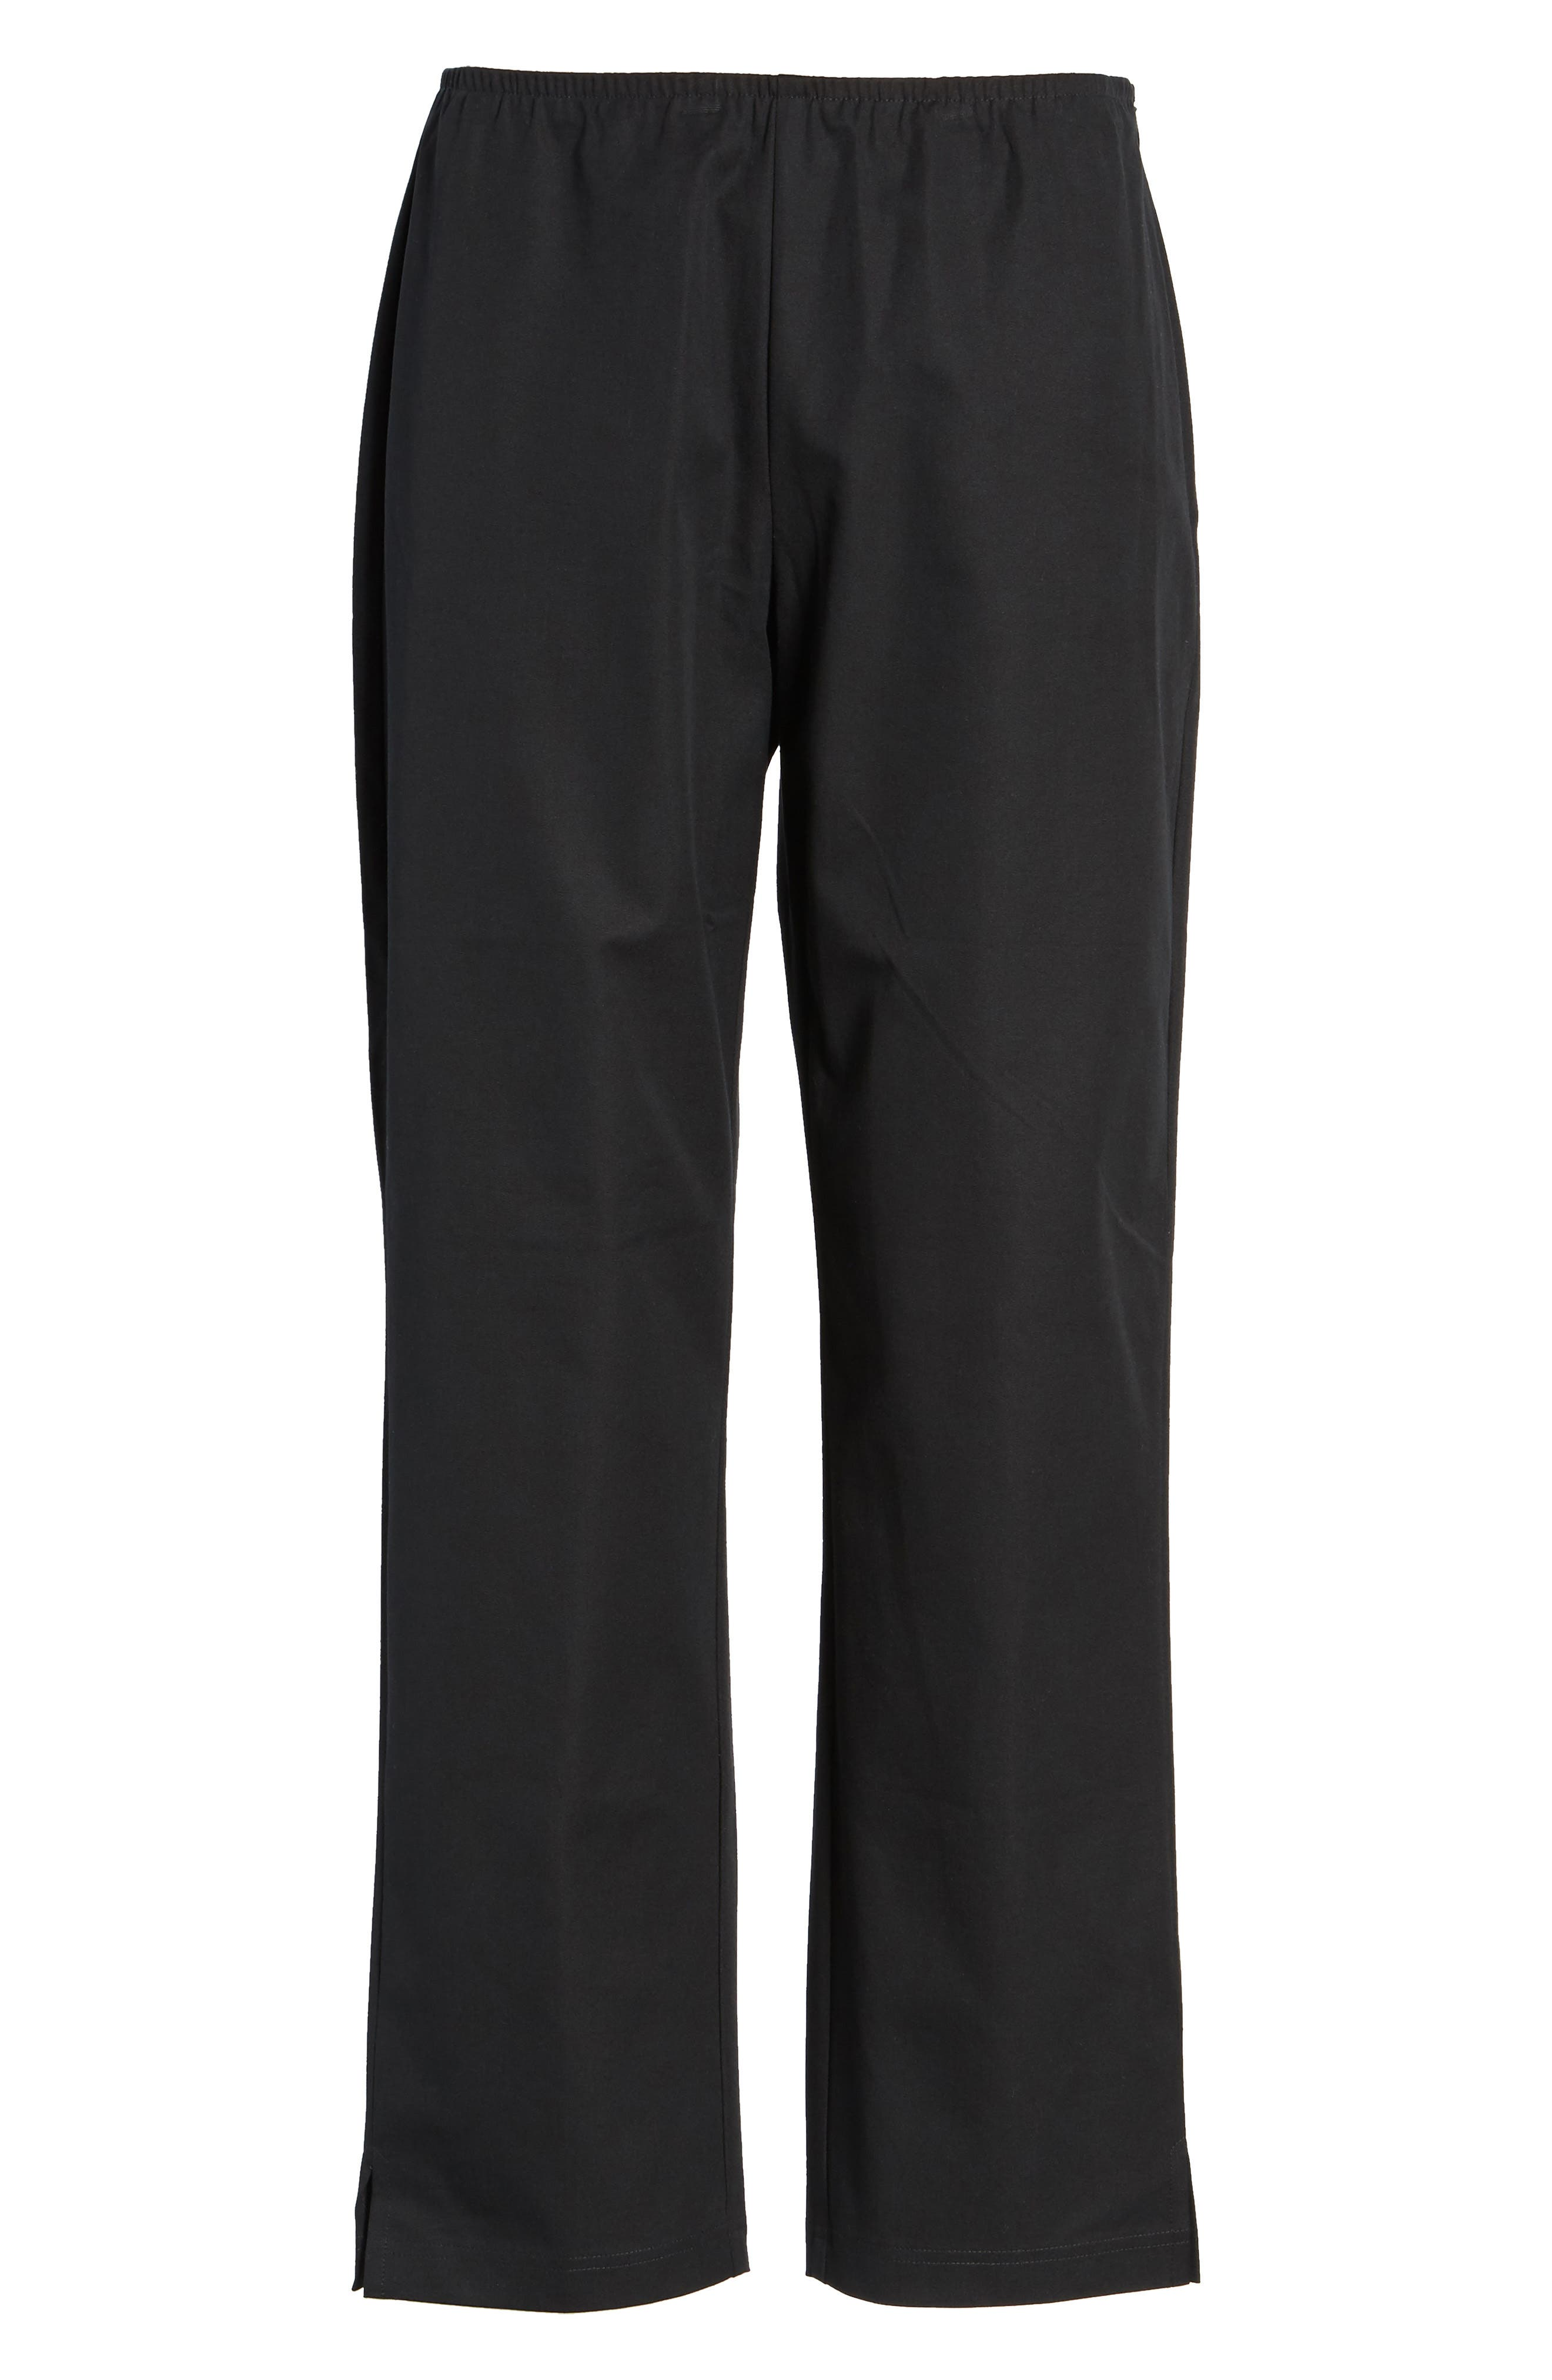 Organic Stretch Cotton Twill Ankle Pants,                             Alternate thumbnail 8, color,                             001